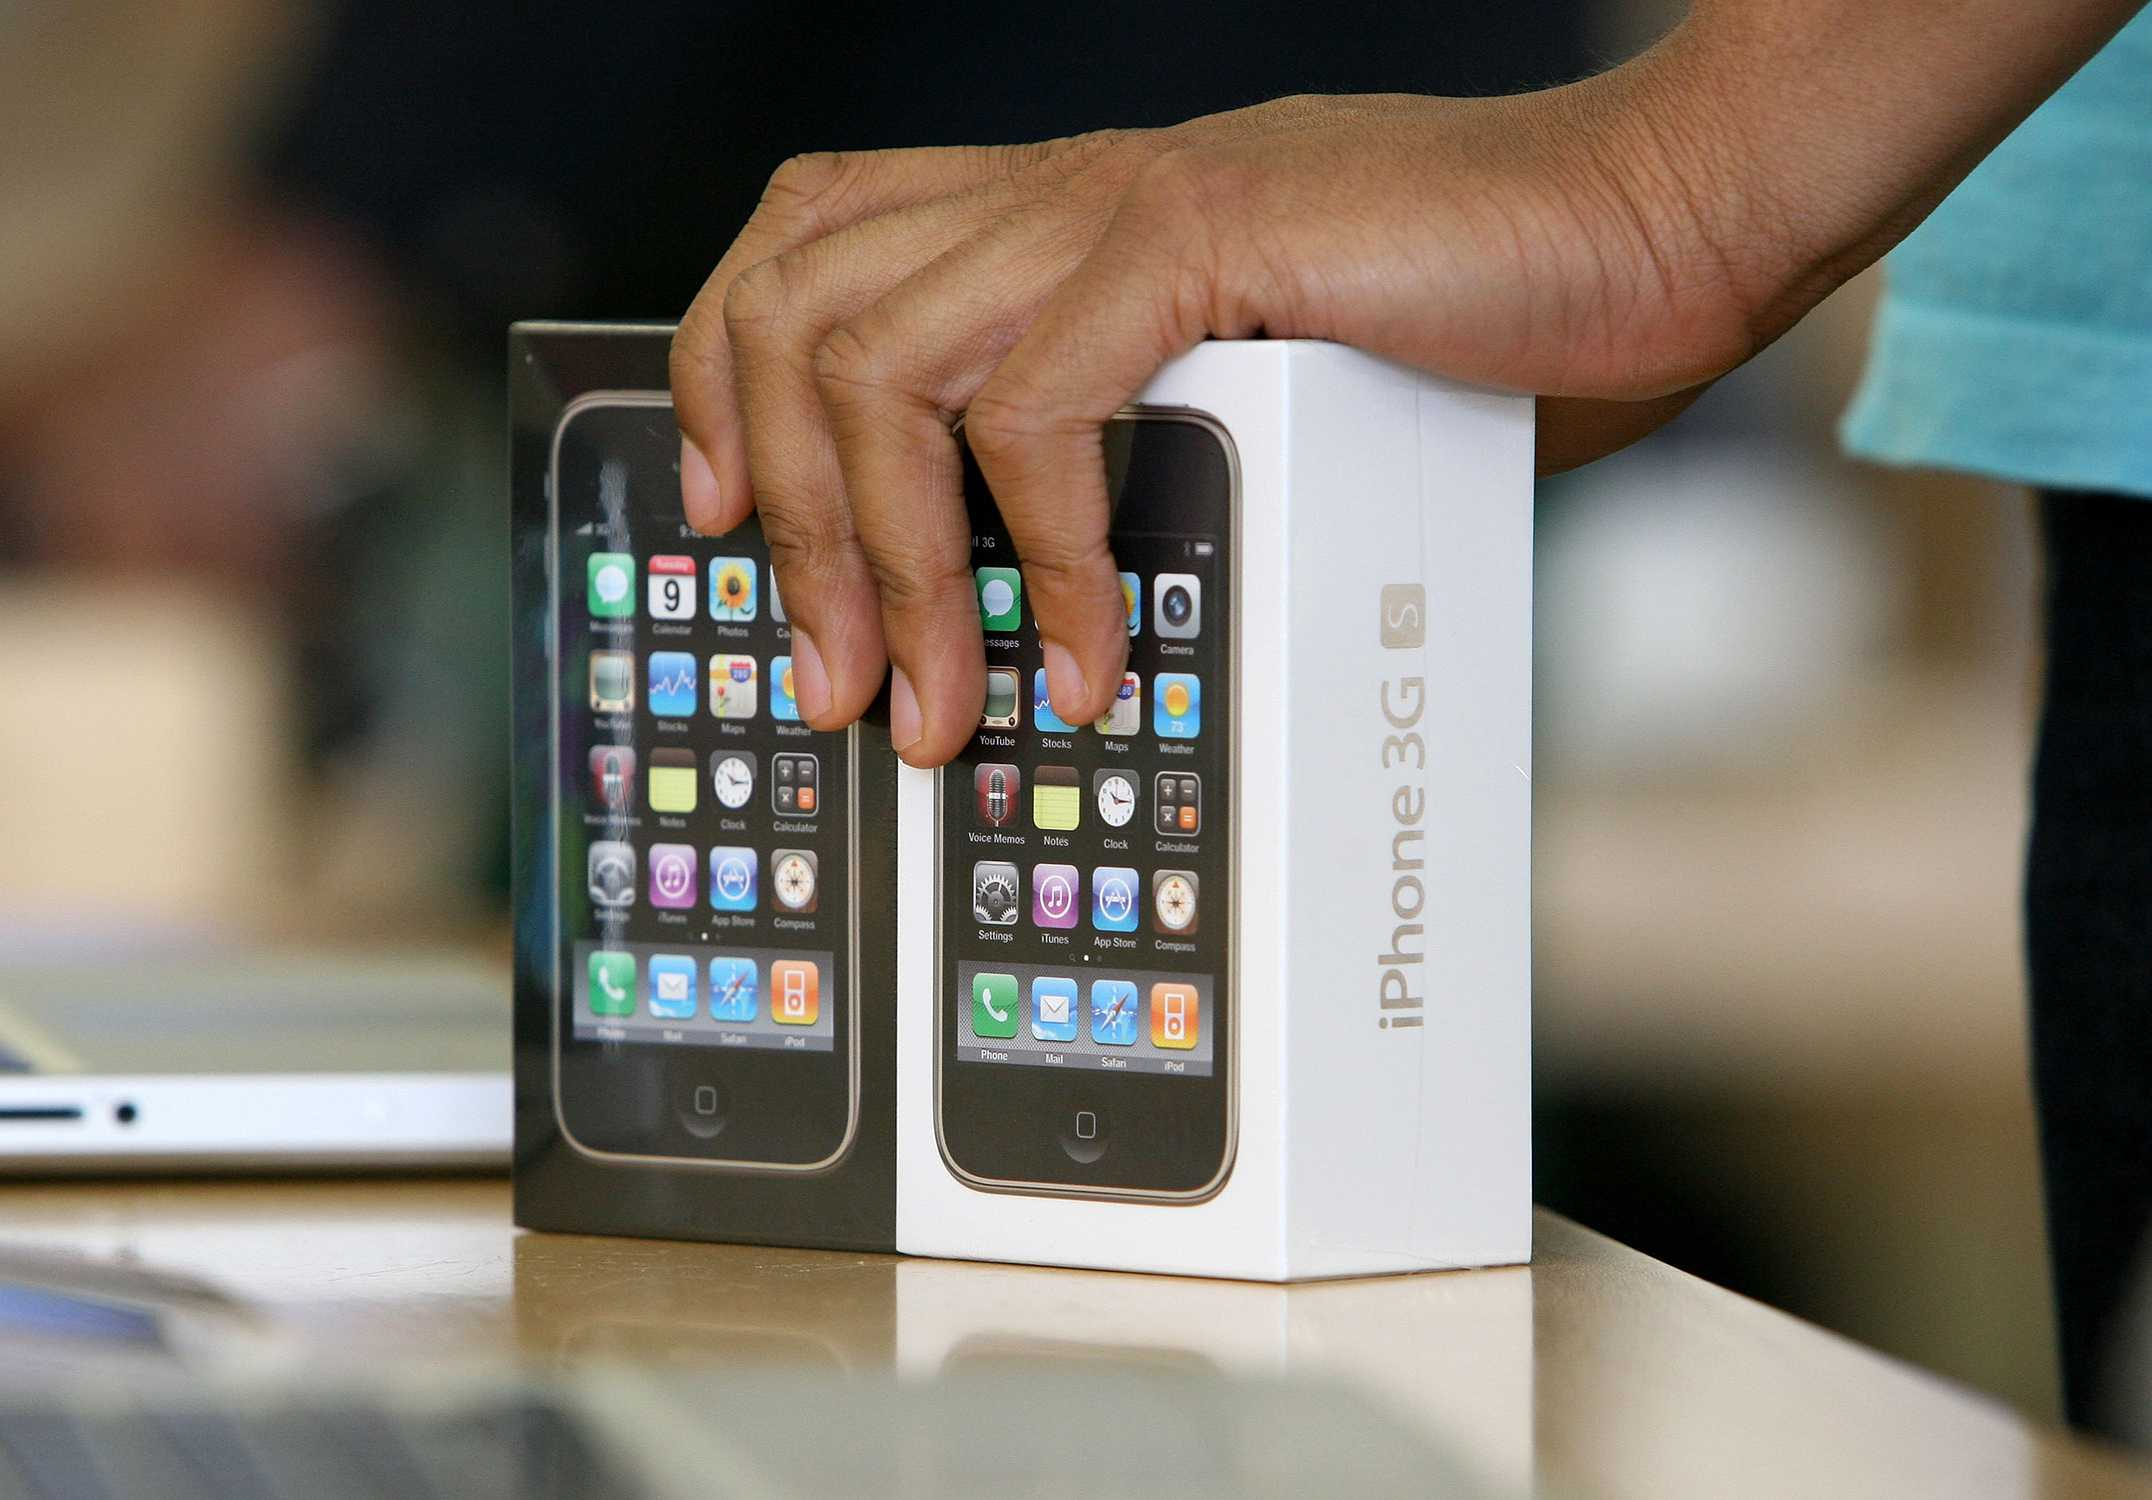 iPhone 3GS in the box